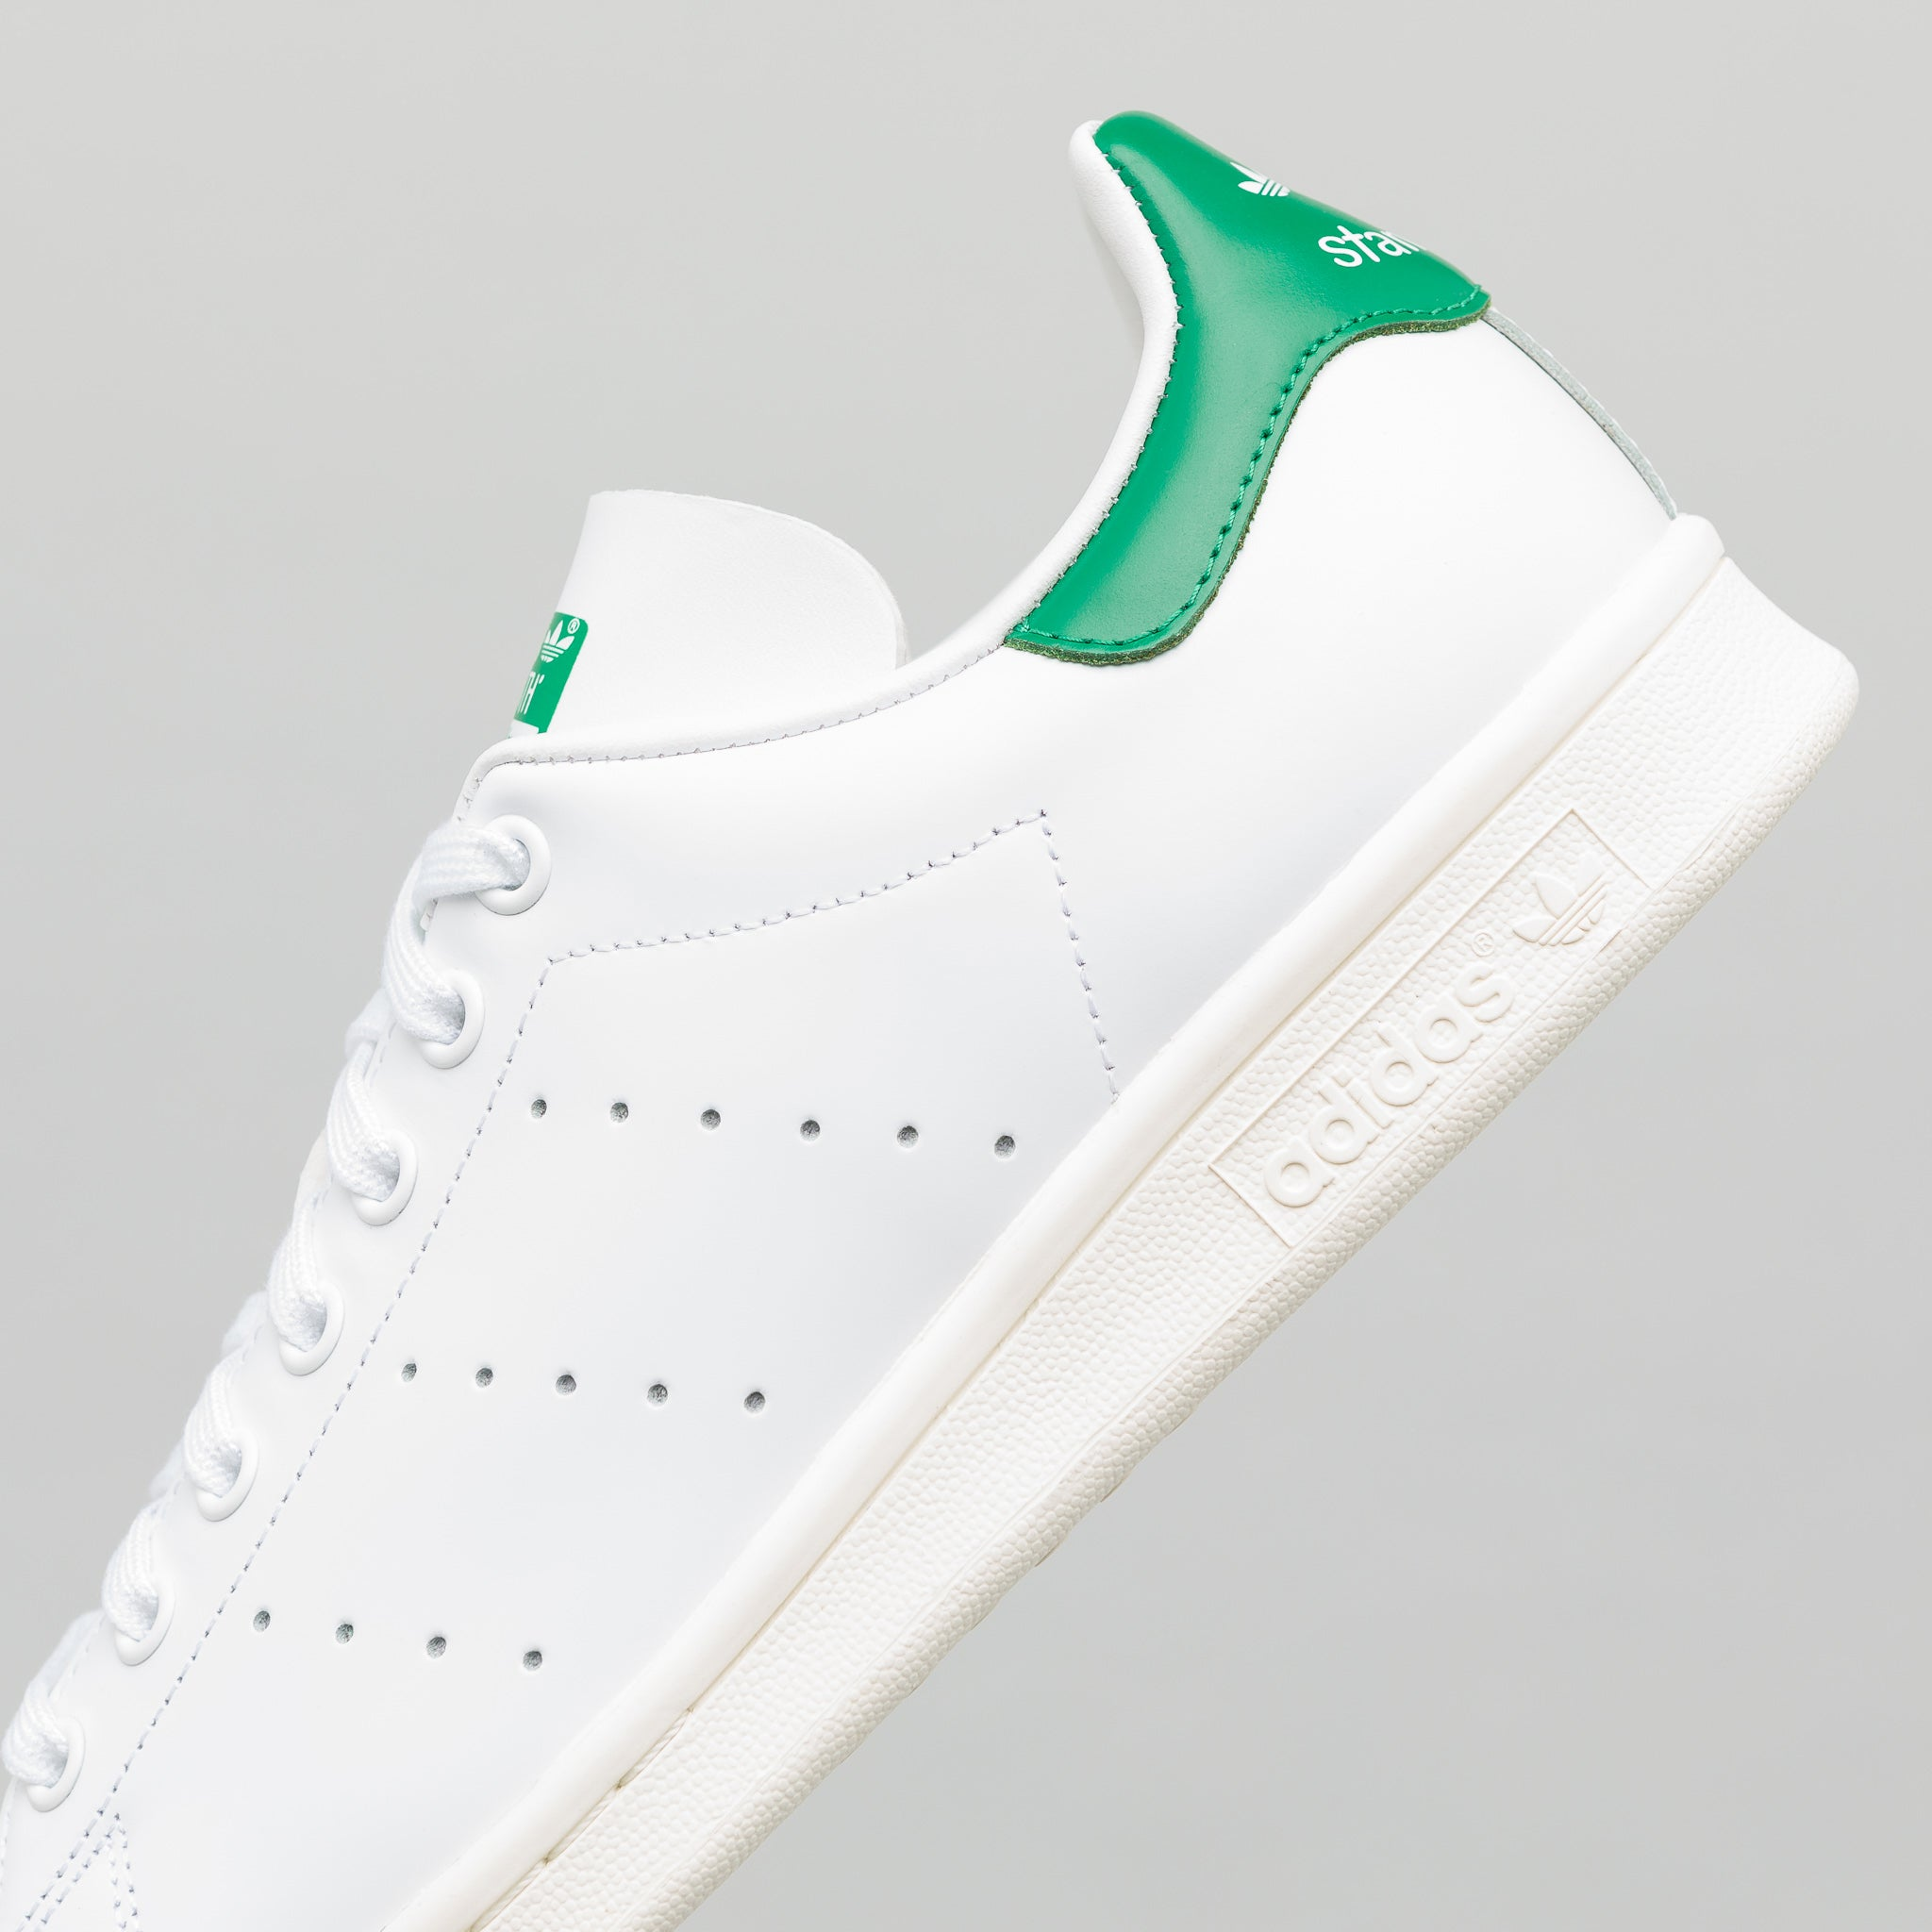 competitive price 21a3d 37a33 Stan Smith in White Green